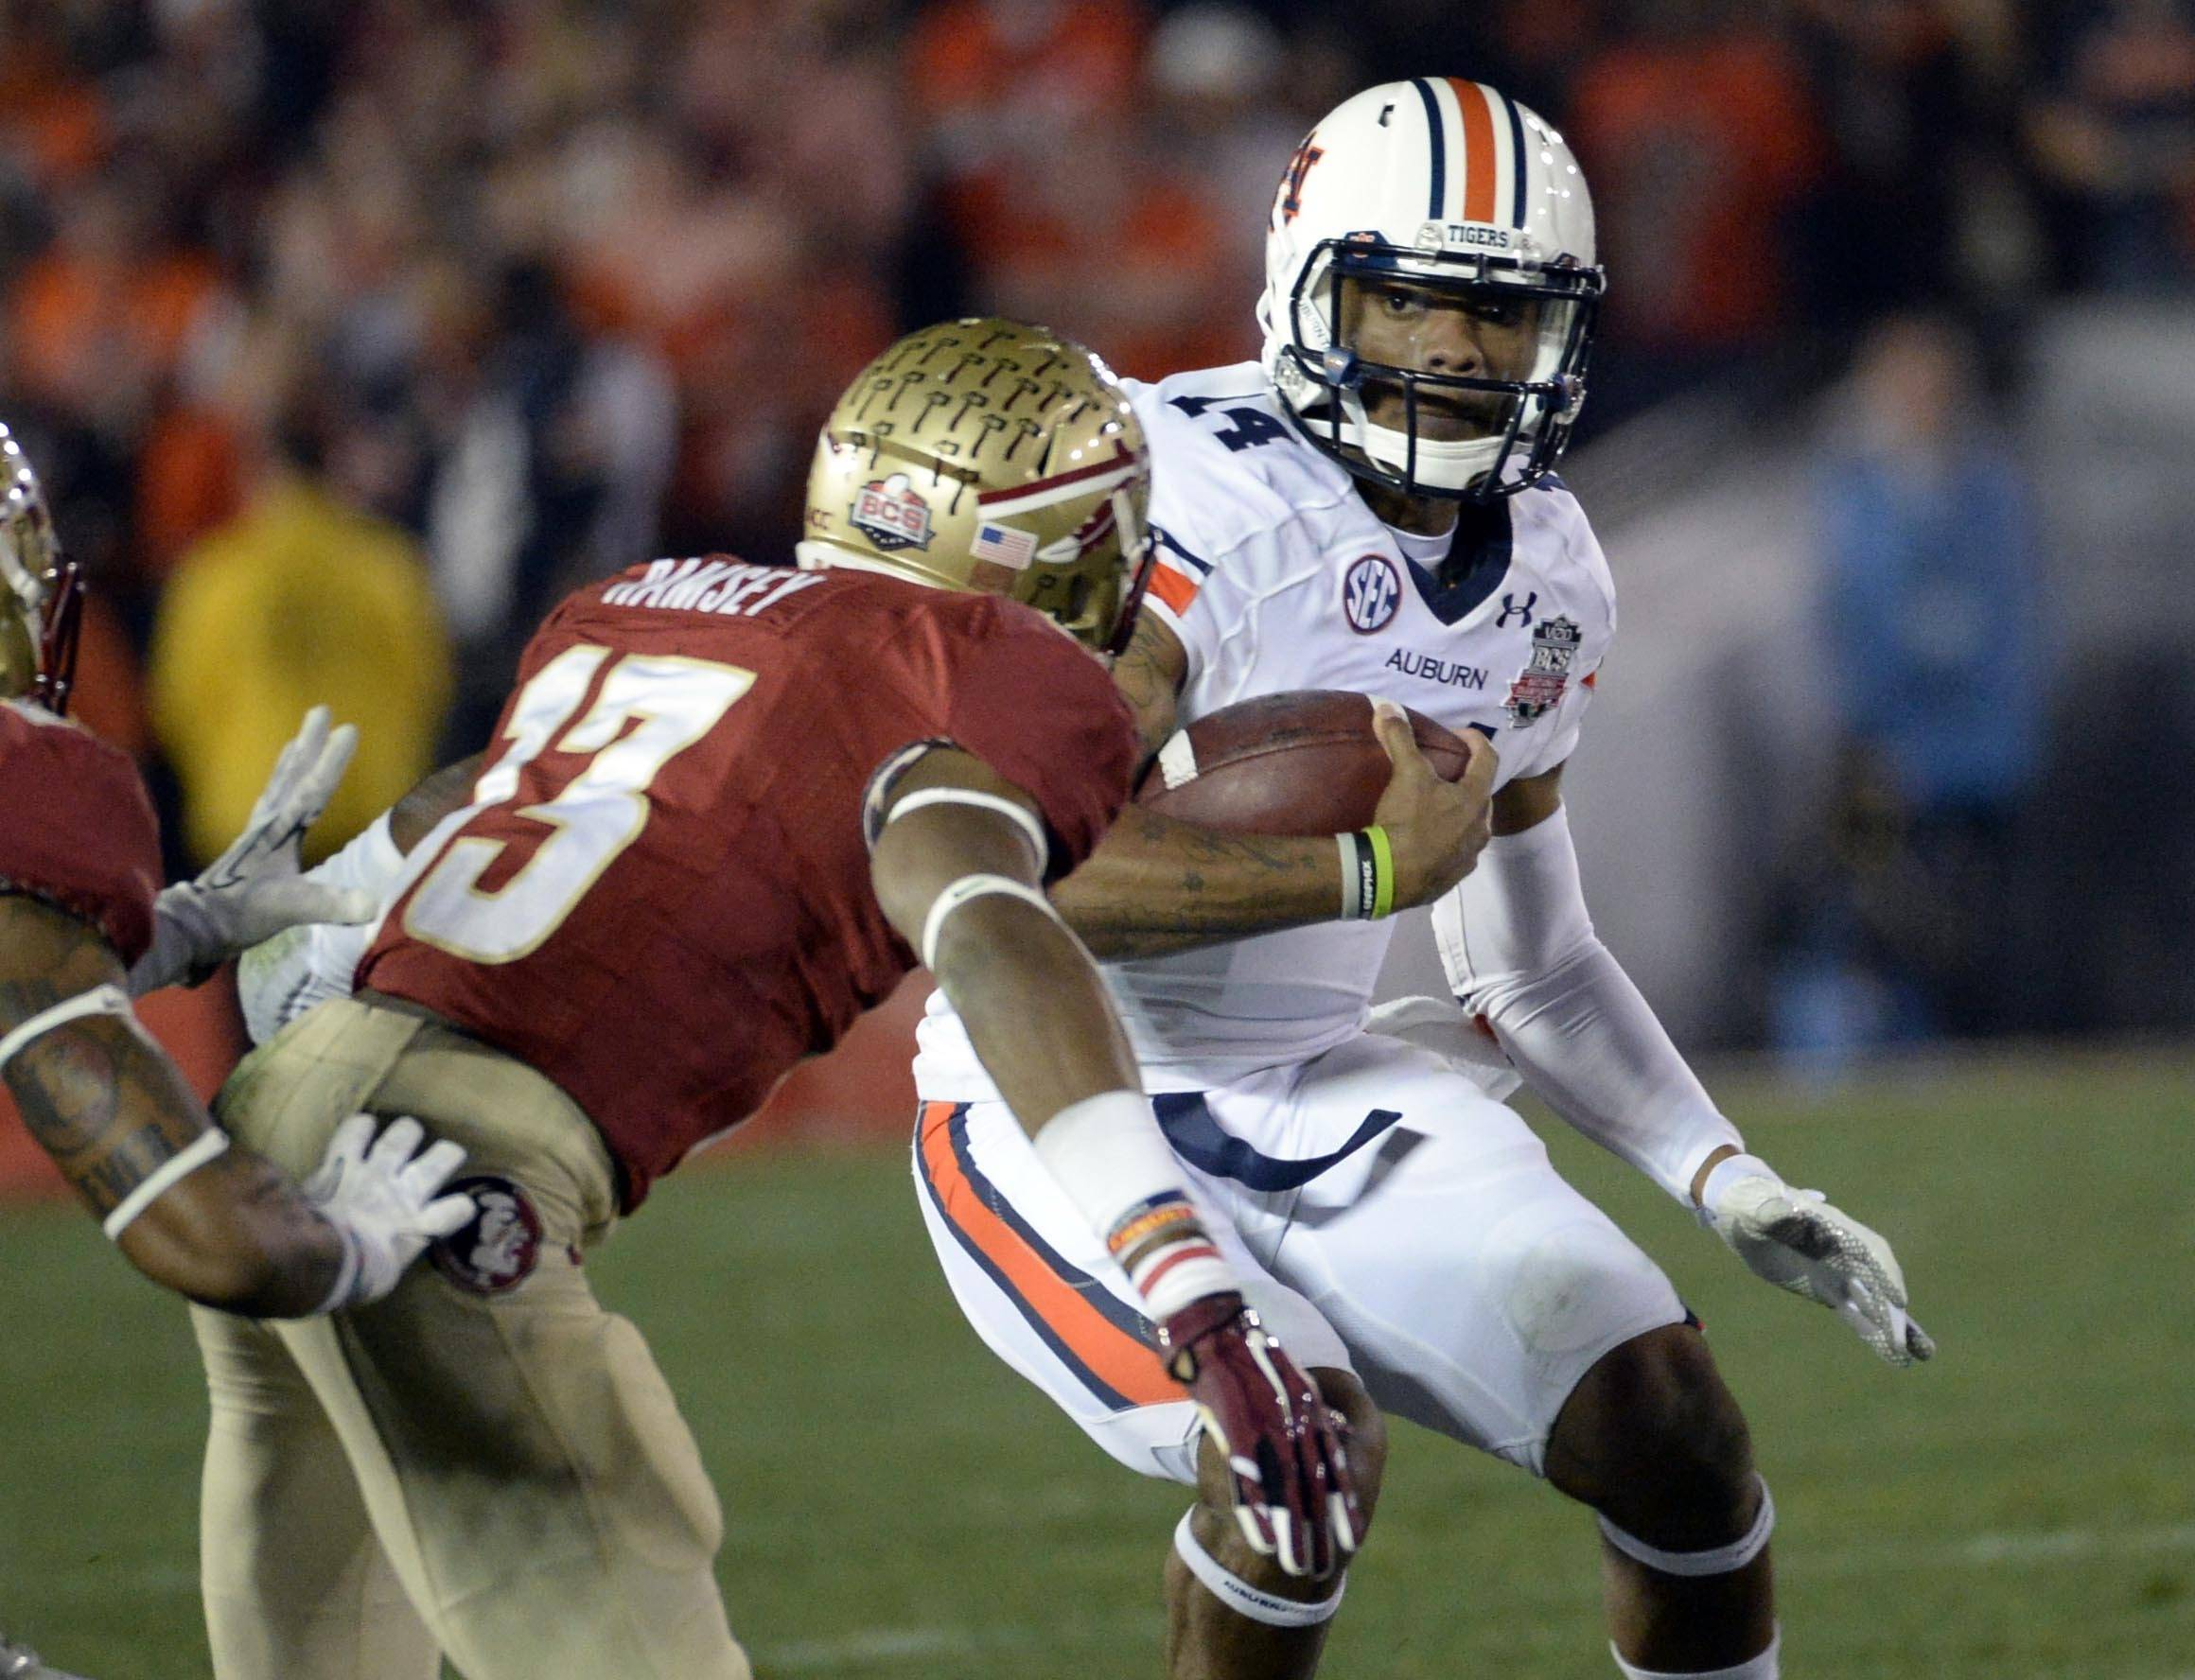 Jan 6, 2014; Pasadena, CA, USA; Auburn Tigers quarterback Nick Marshall (14) runs under pressure from Florida State Seminoles defensive back Jalen Ramsey (13)during the first half of the 2014 BCS National Championship game at the Rose Bowl.  Mandatory Credit: Richard Mackson-USA TODAY Sports